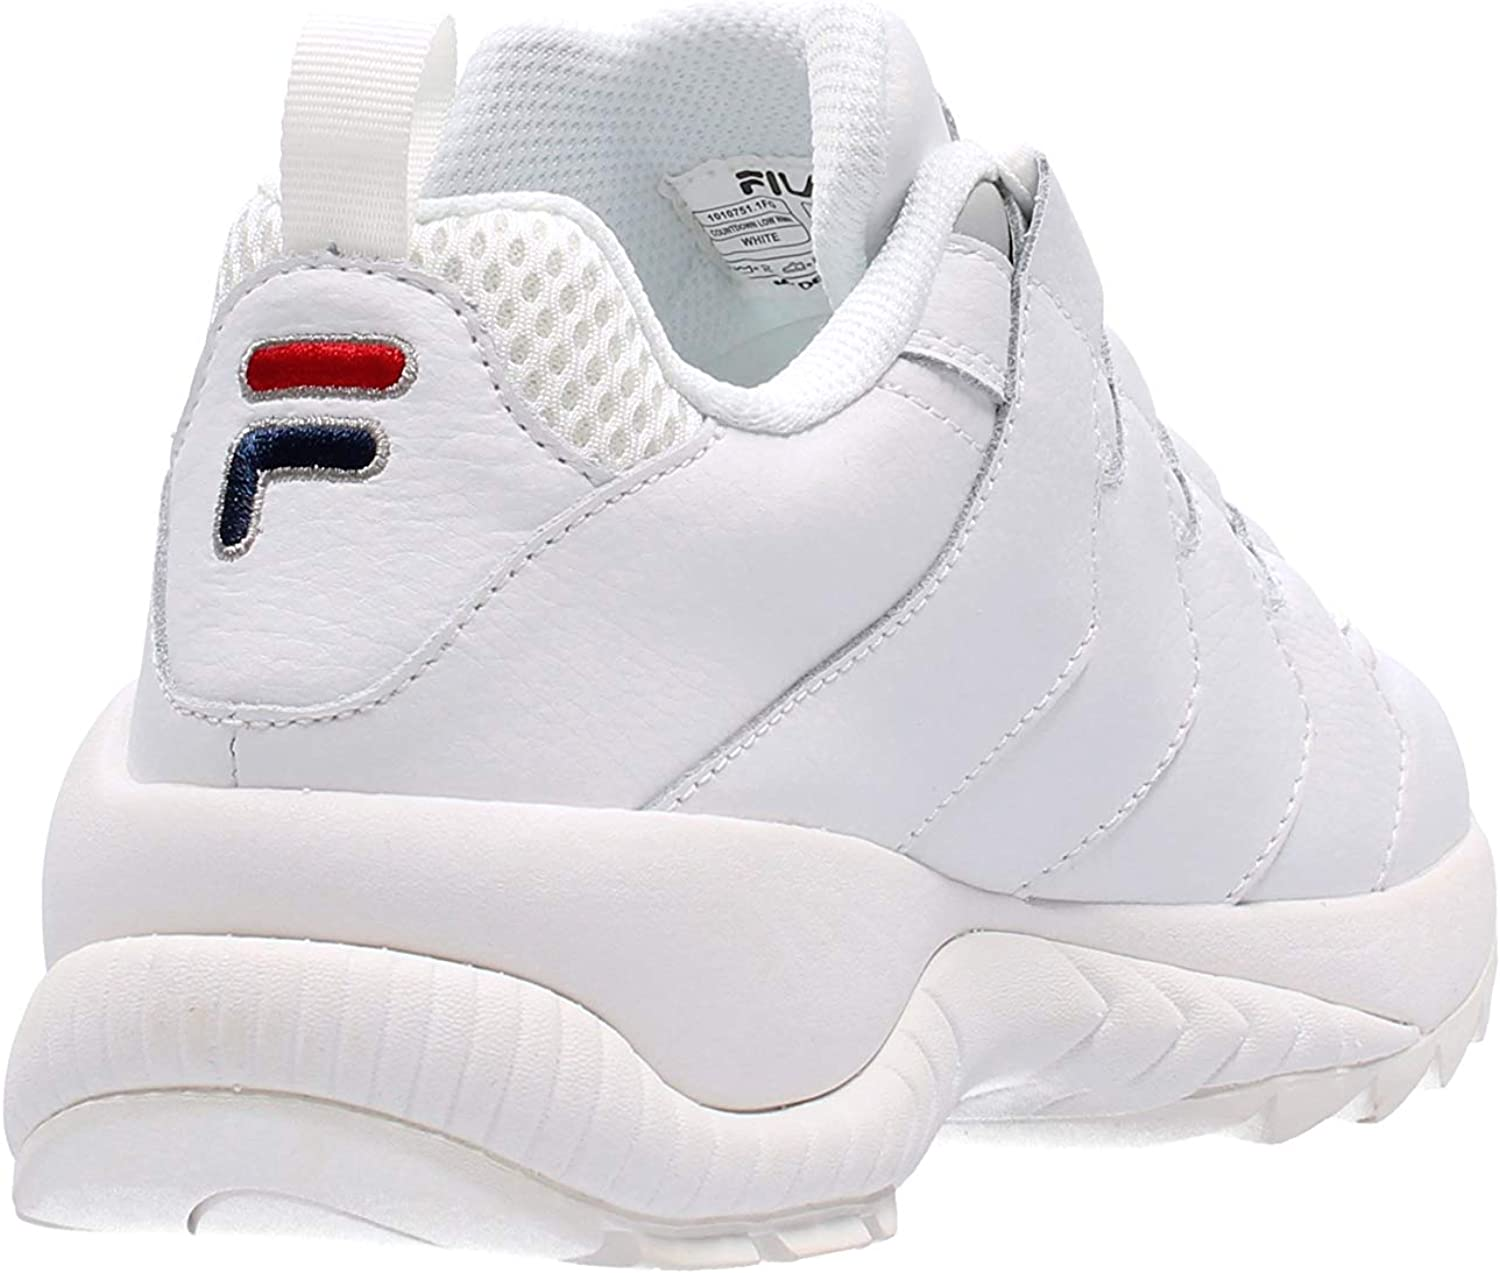 FILA Countdown Low White 1010751.1FG: MainApps: Amazon.es: Zapatos y complementos